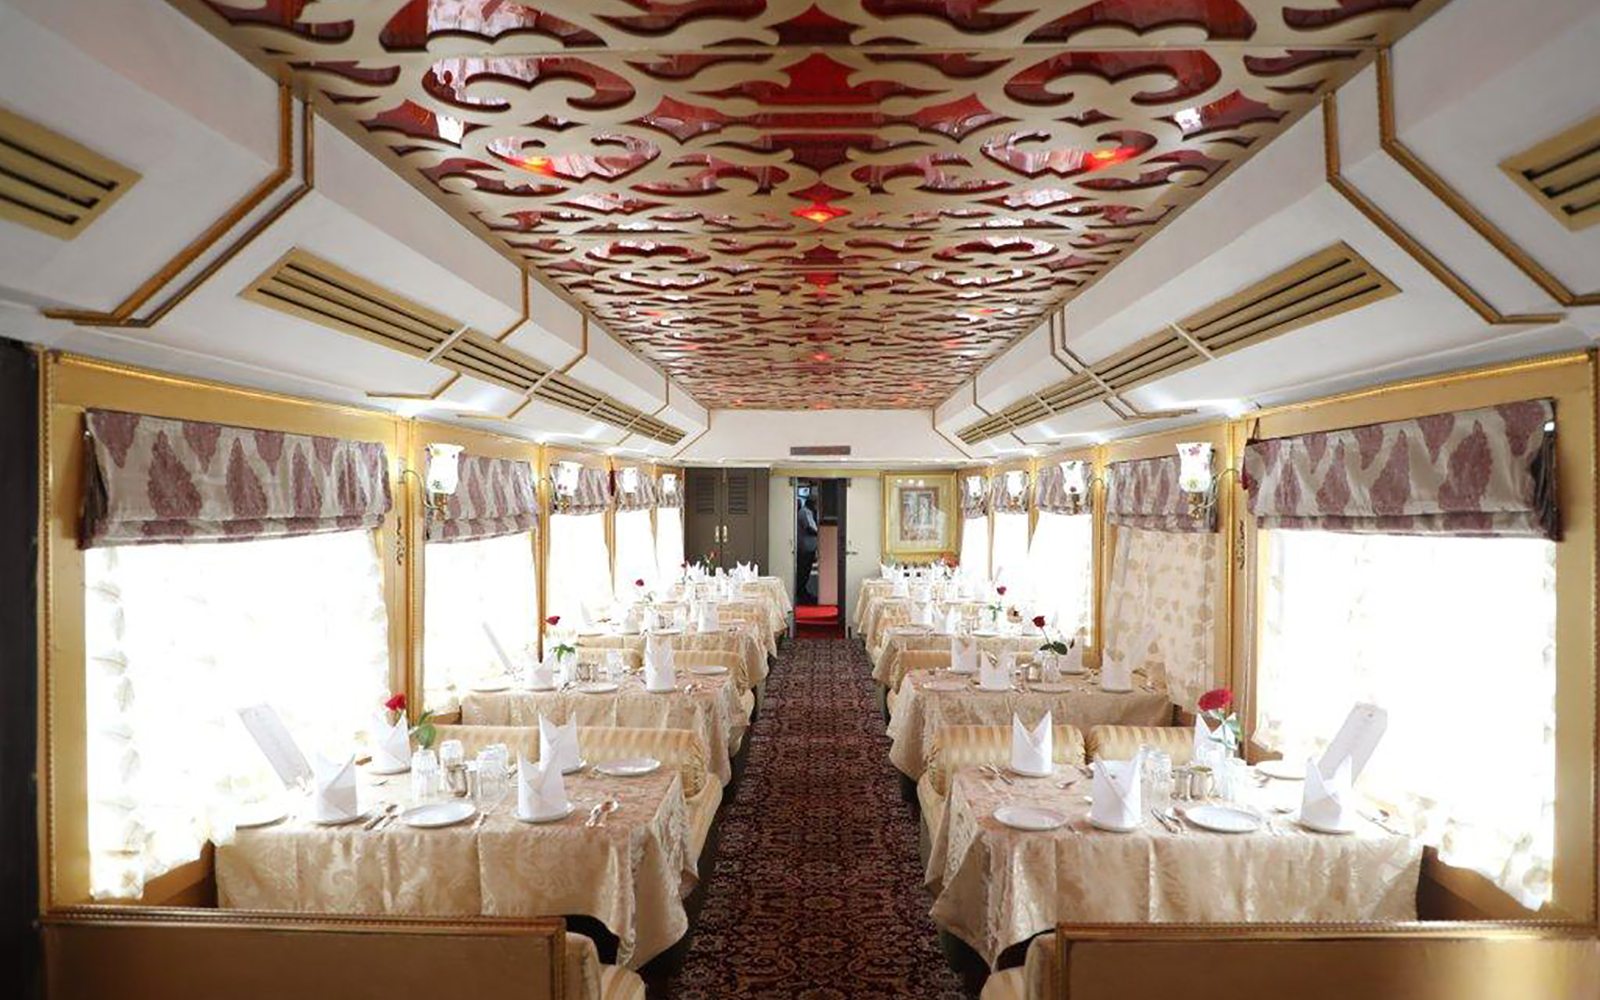 India's 'Palace on Wheels' Is One of the Most Luxurious Train Rides in the World